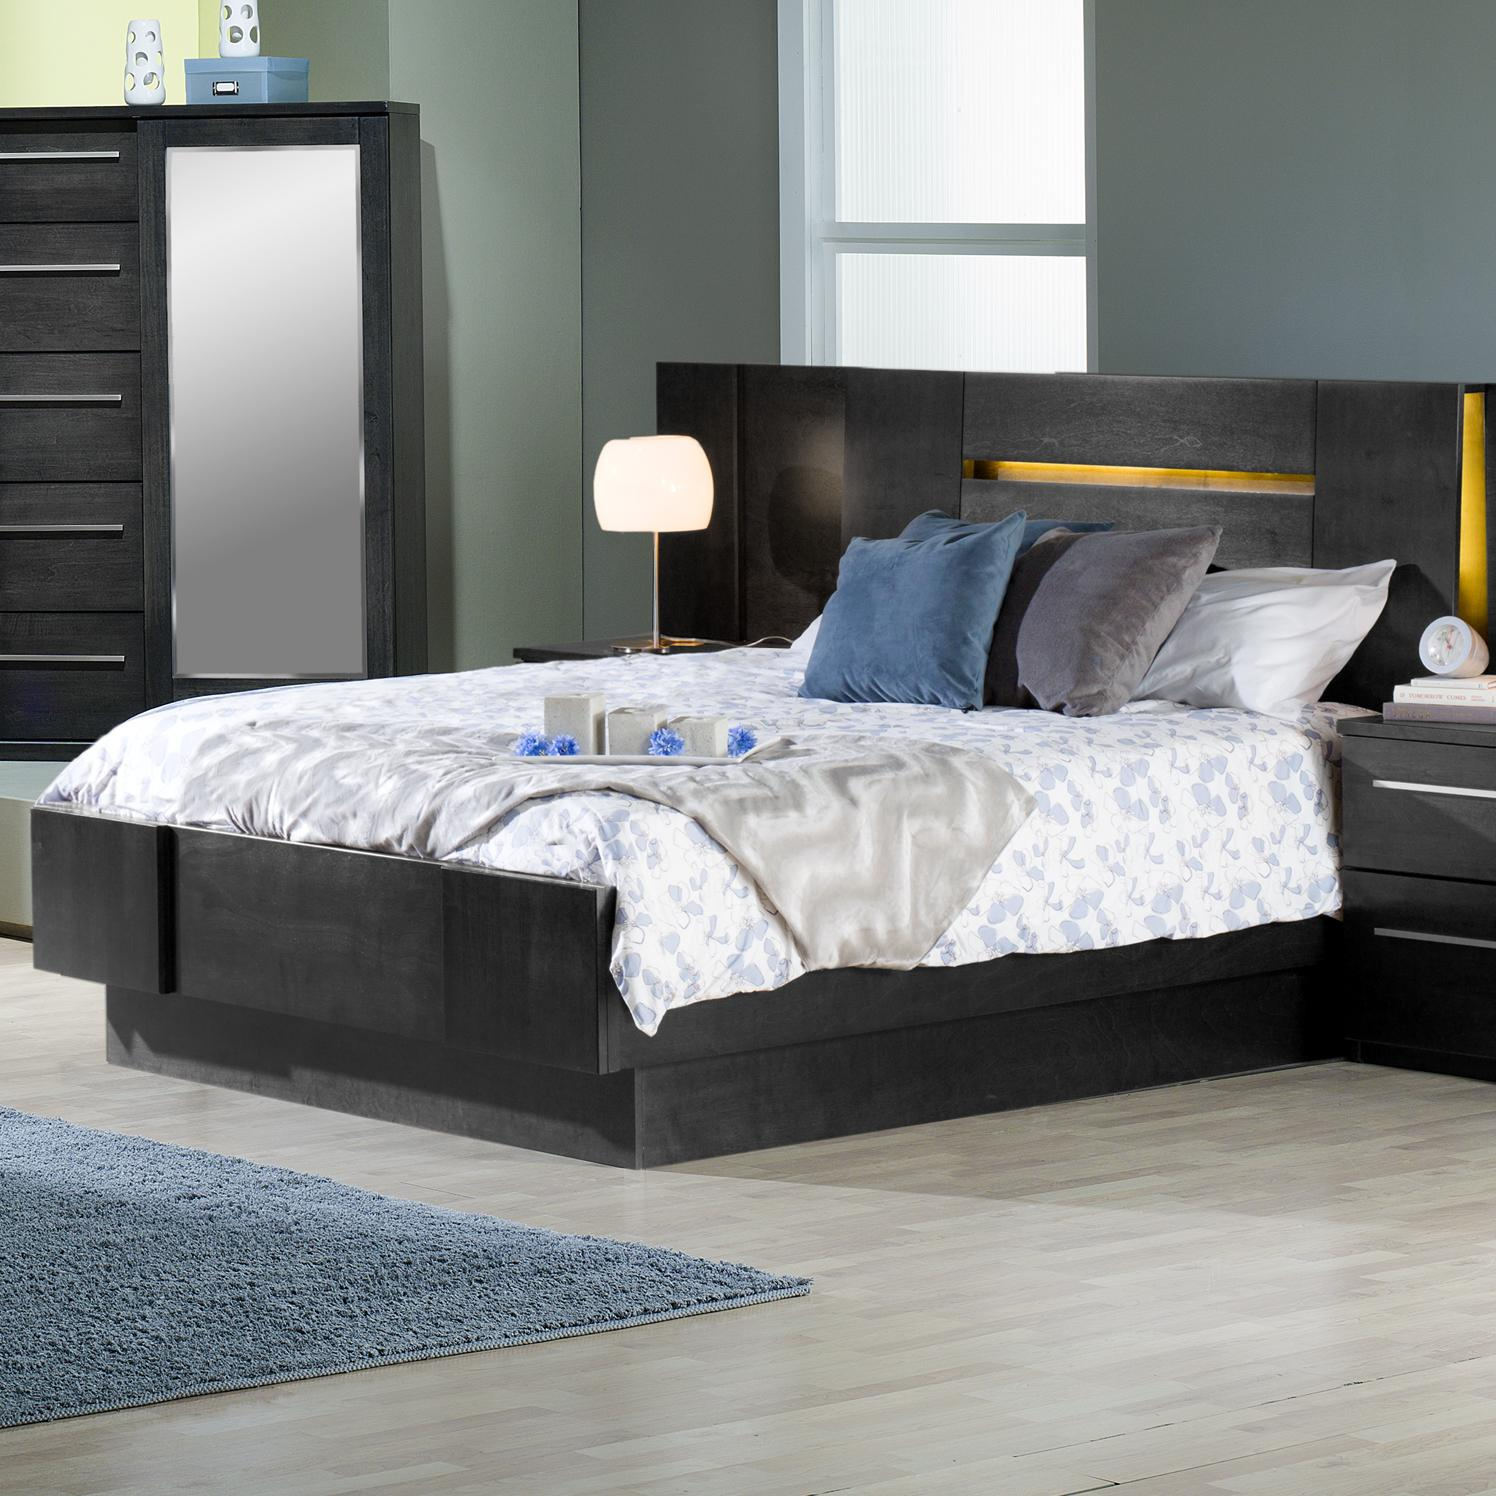 Milano King Platform Bed with 2 Nightstands by Defehr at Stoney Creek Furniture